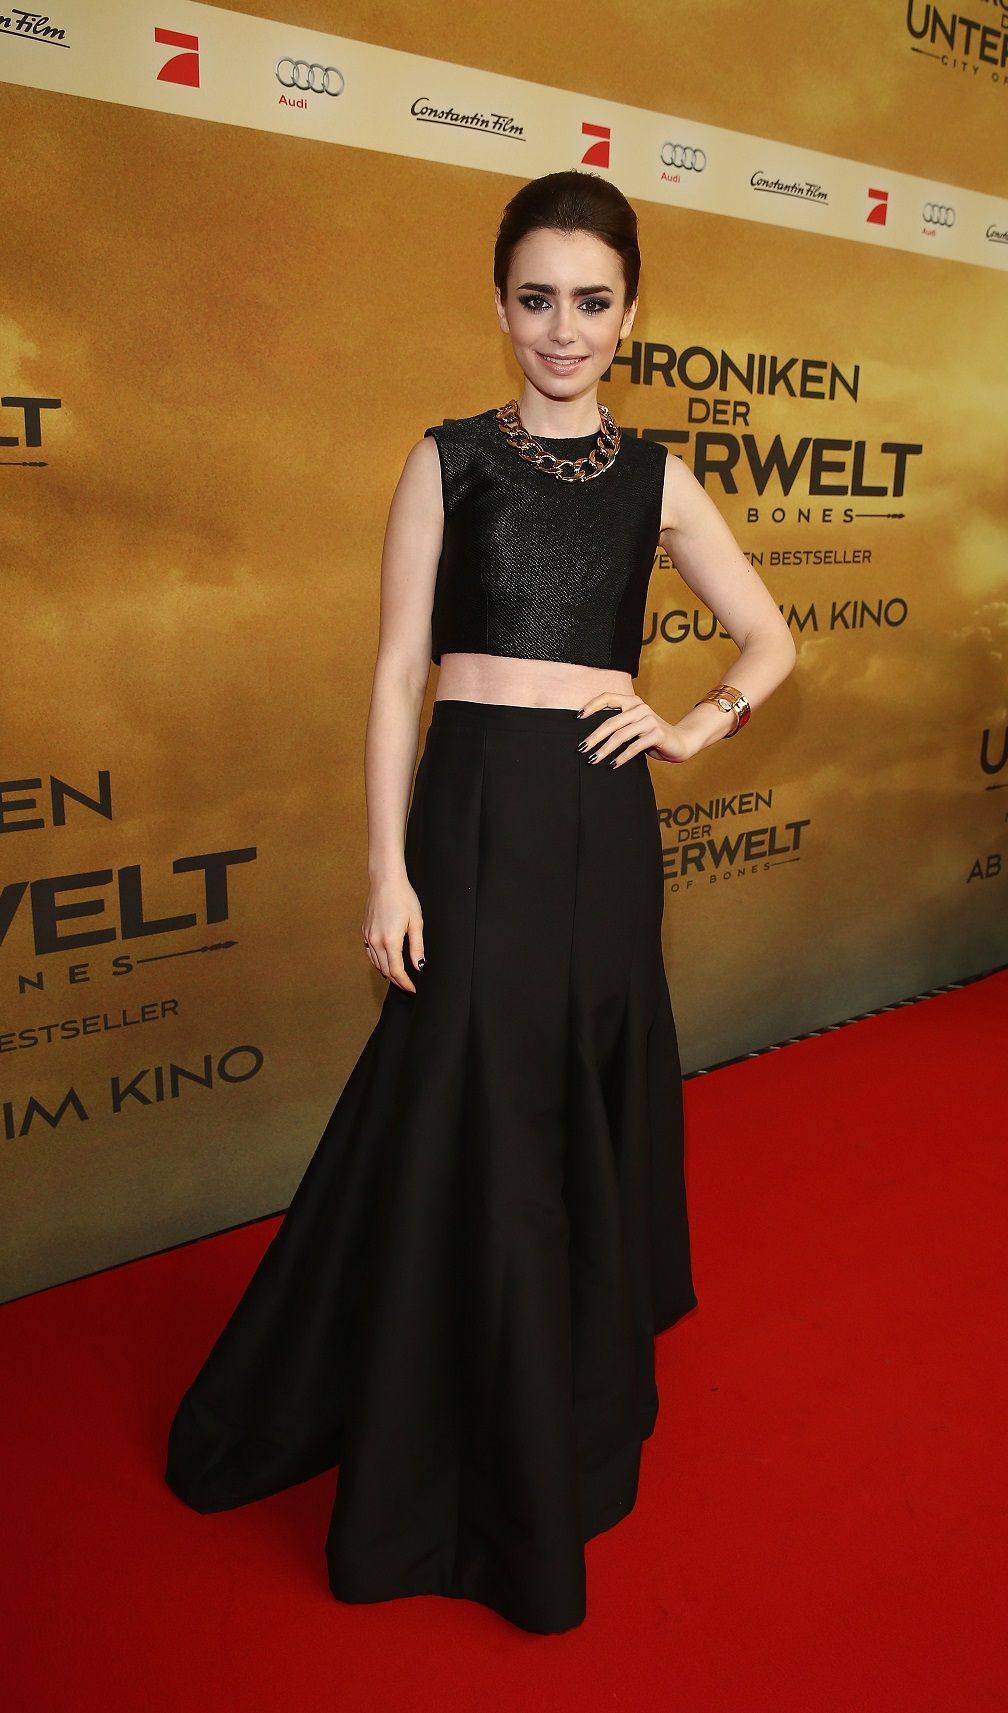 Lily Collins' The Mortal Instruments: City of Bones premiere outfit blew us away, now we're copying her look for less!